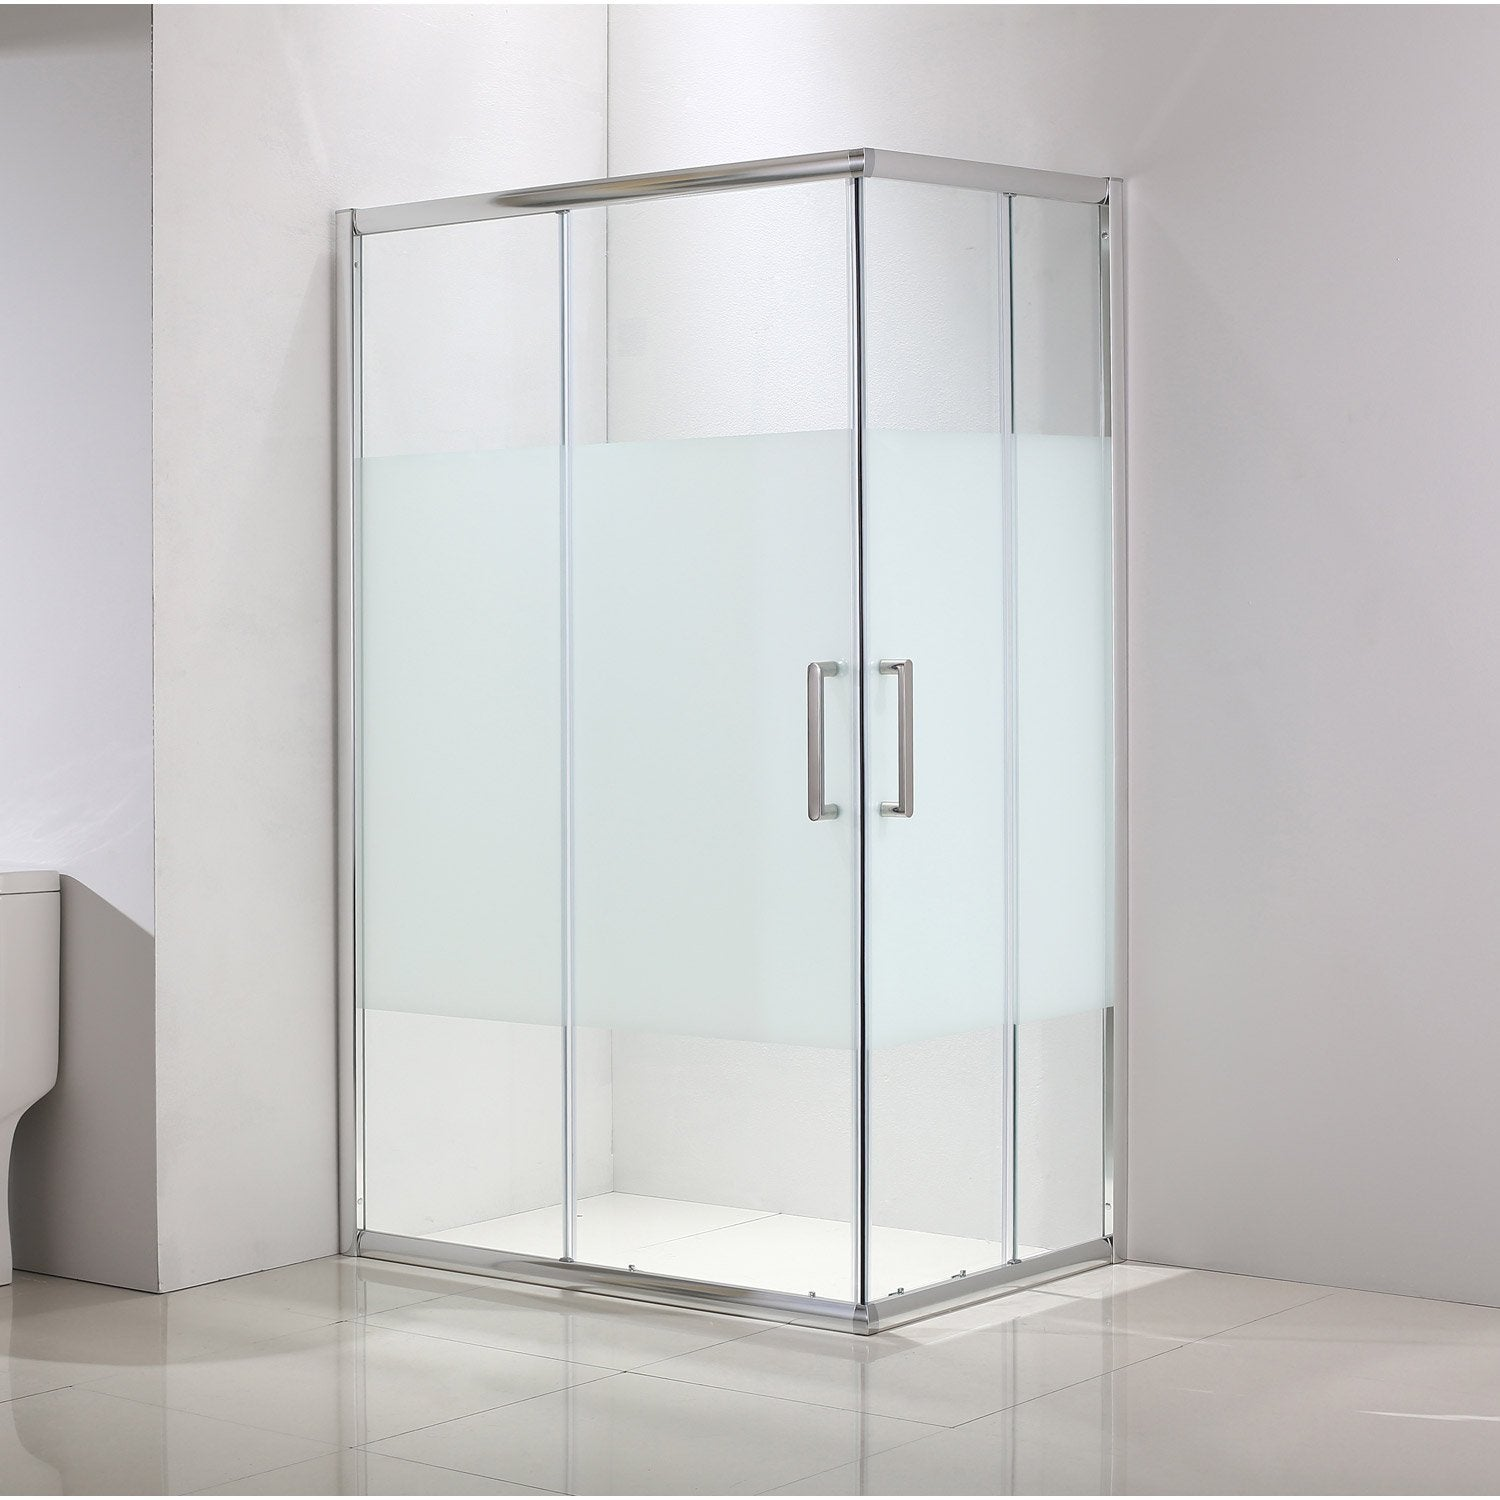 Porte de douche coulissante angle rectangle 100 x 80 cm for Porte de douche 100